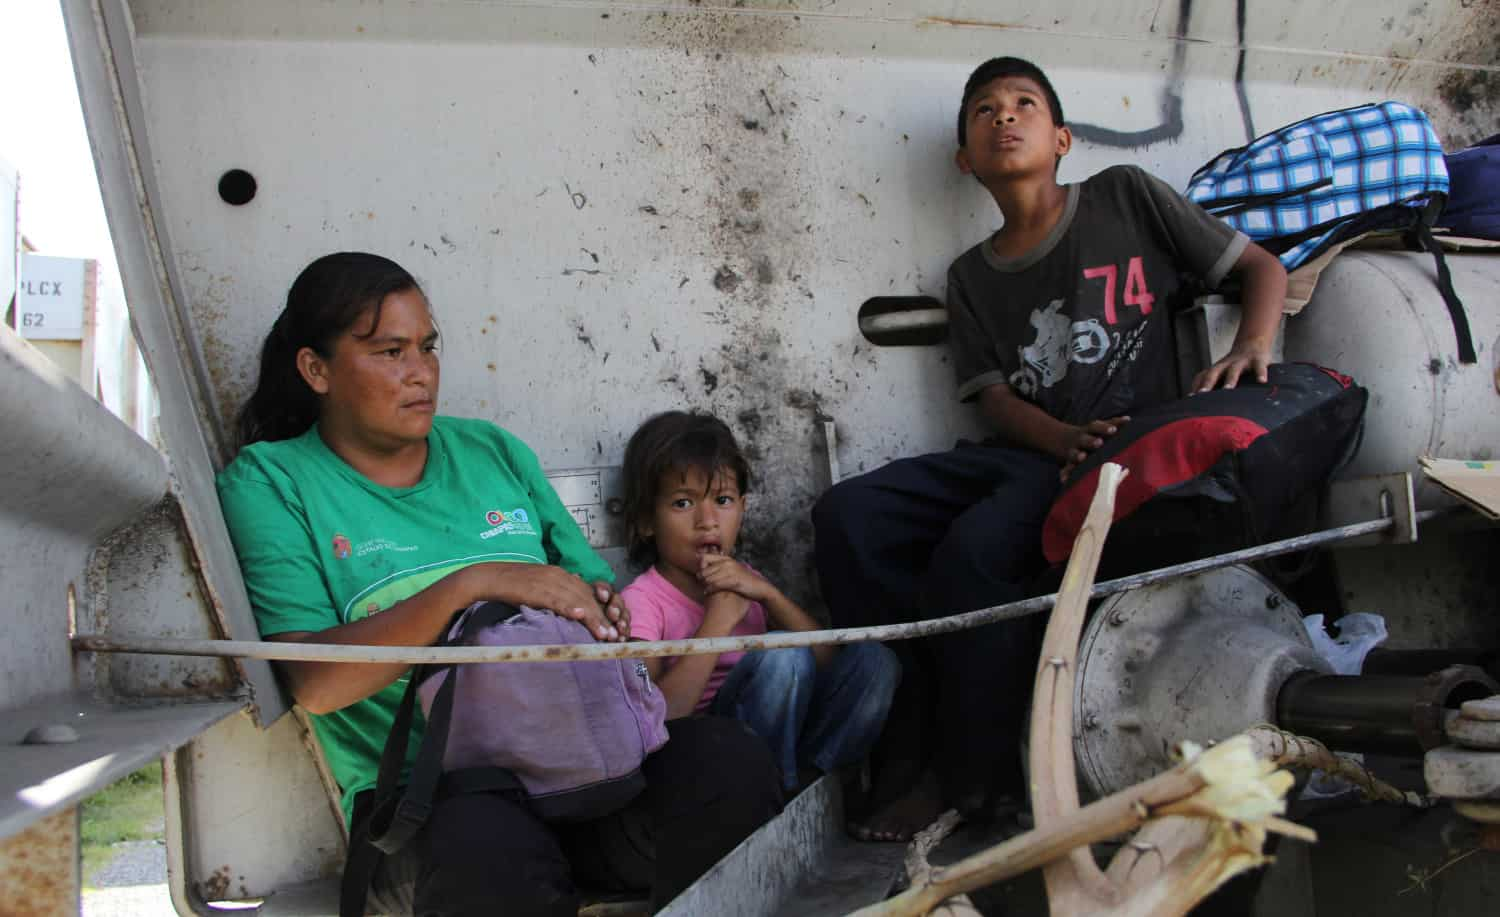 """A Central American immigrant and her children sit inside the so-called """"La Bestia"""" (The Beast) cargo train, in an attempt to reach the Mexico-U.S. border."""